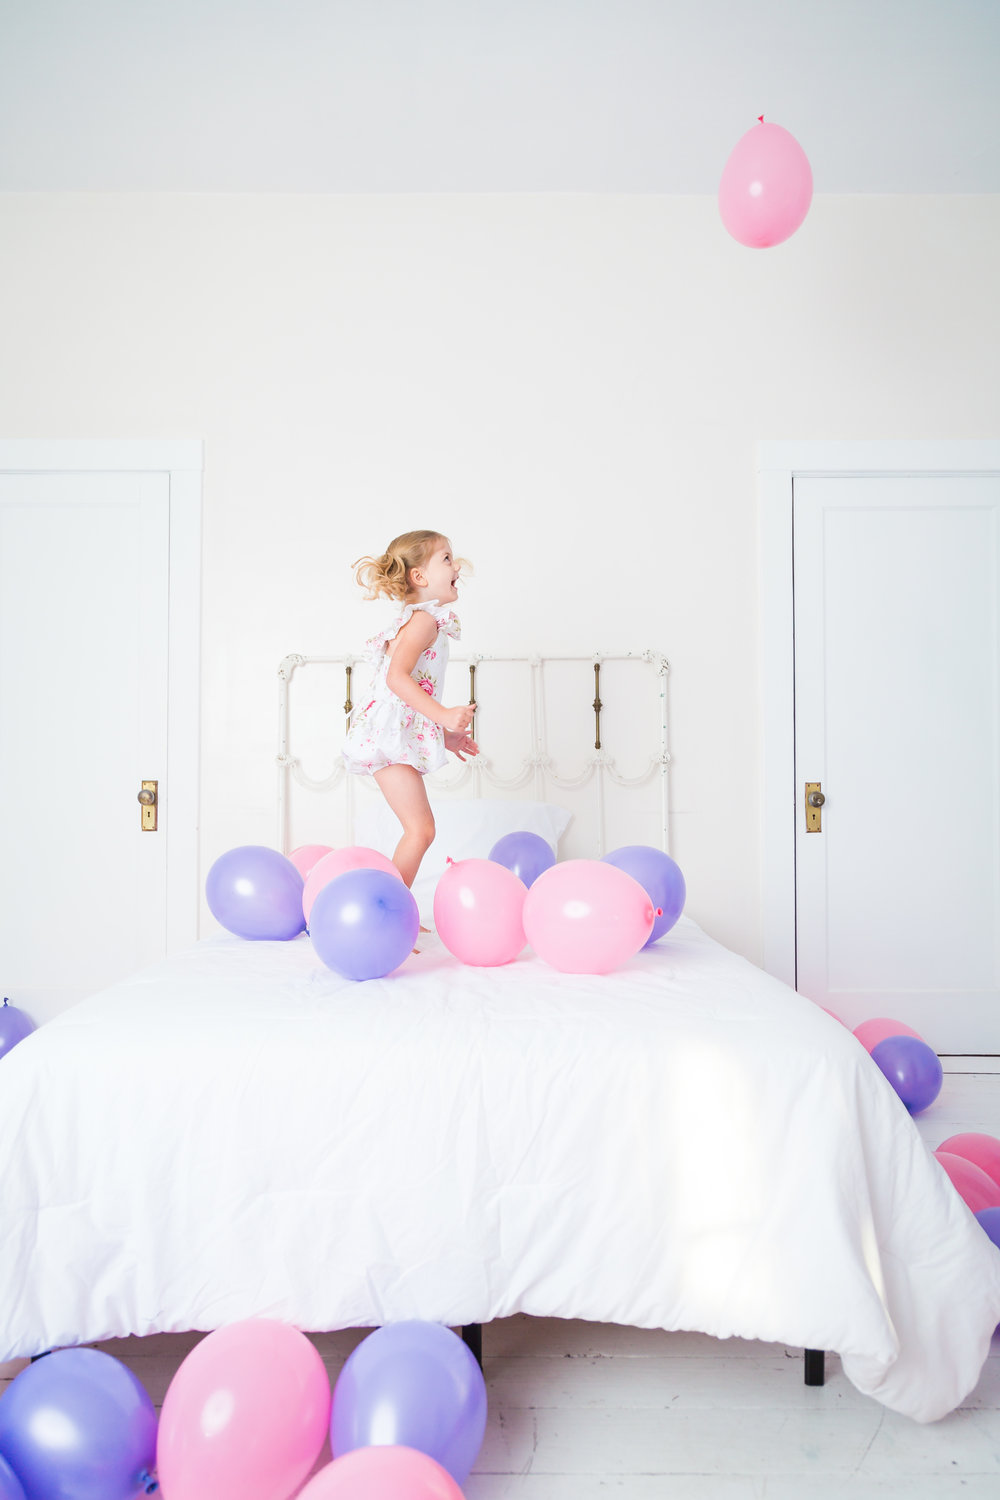 Girl Jumps on Bed Surrounded by Balloons